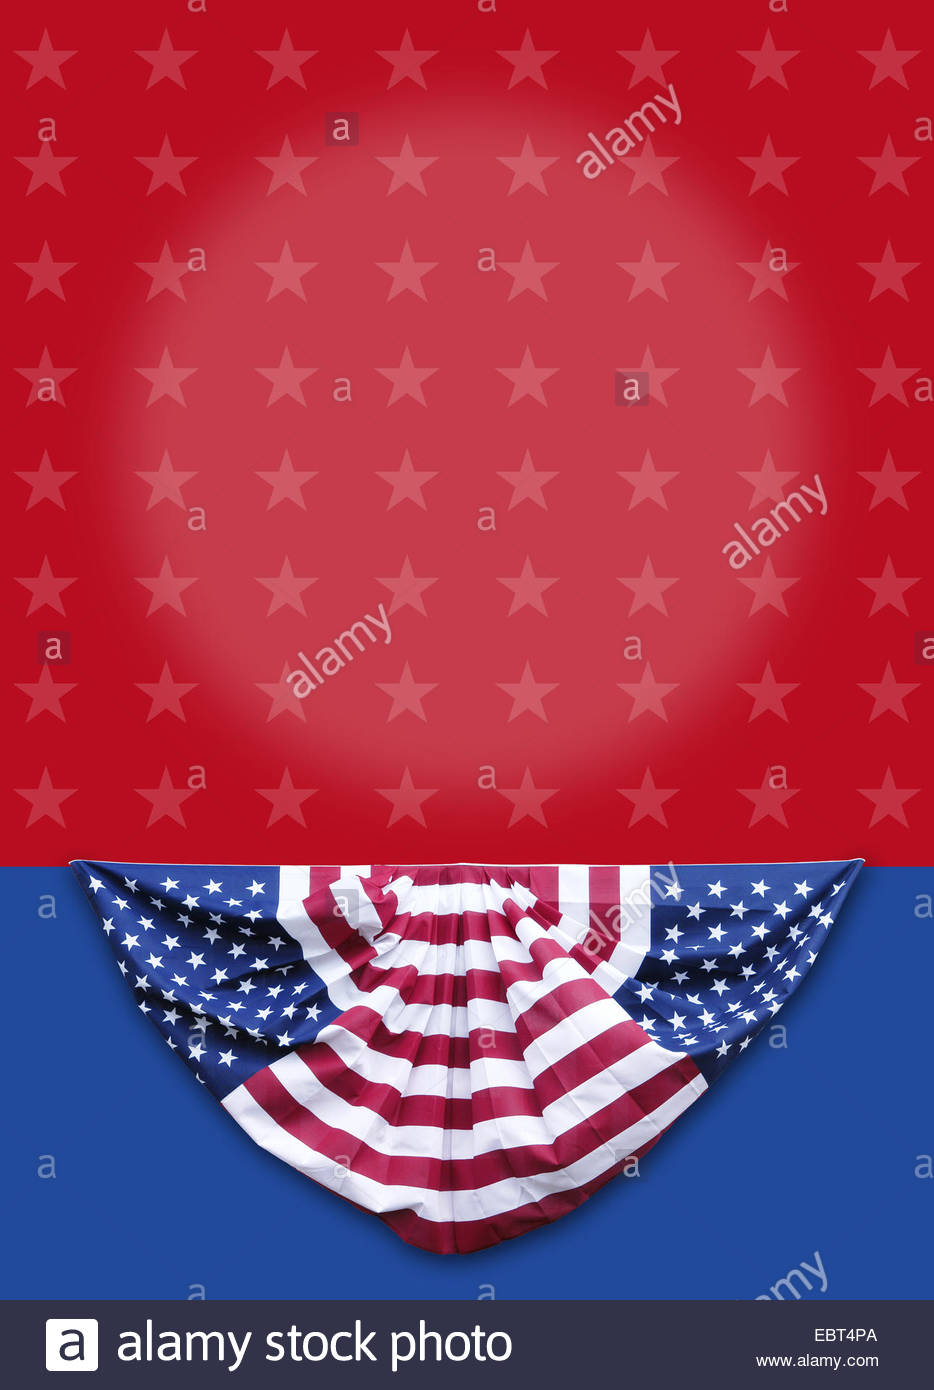 Election Poster Background Red white and blue electioncampaign 934x1390